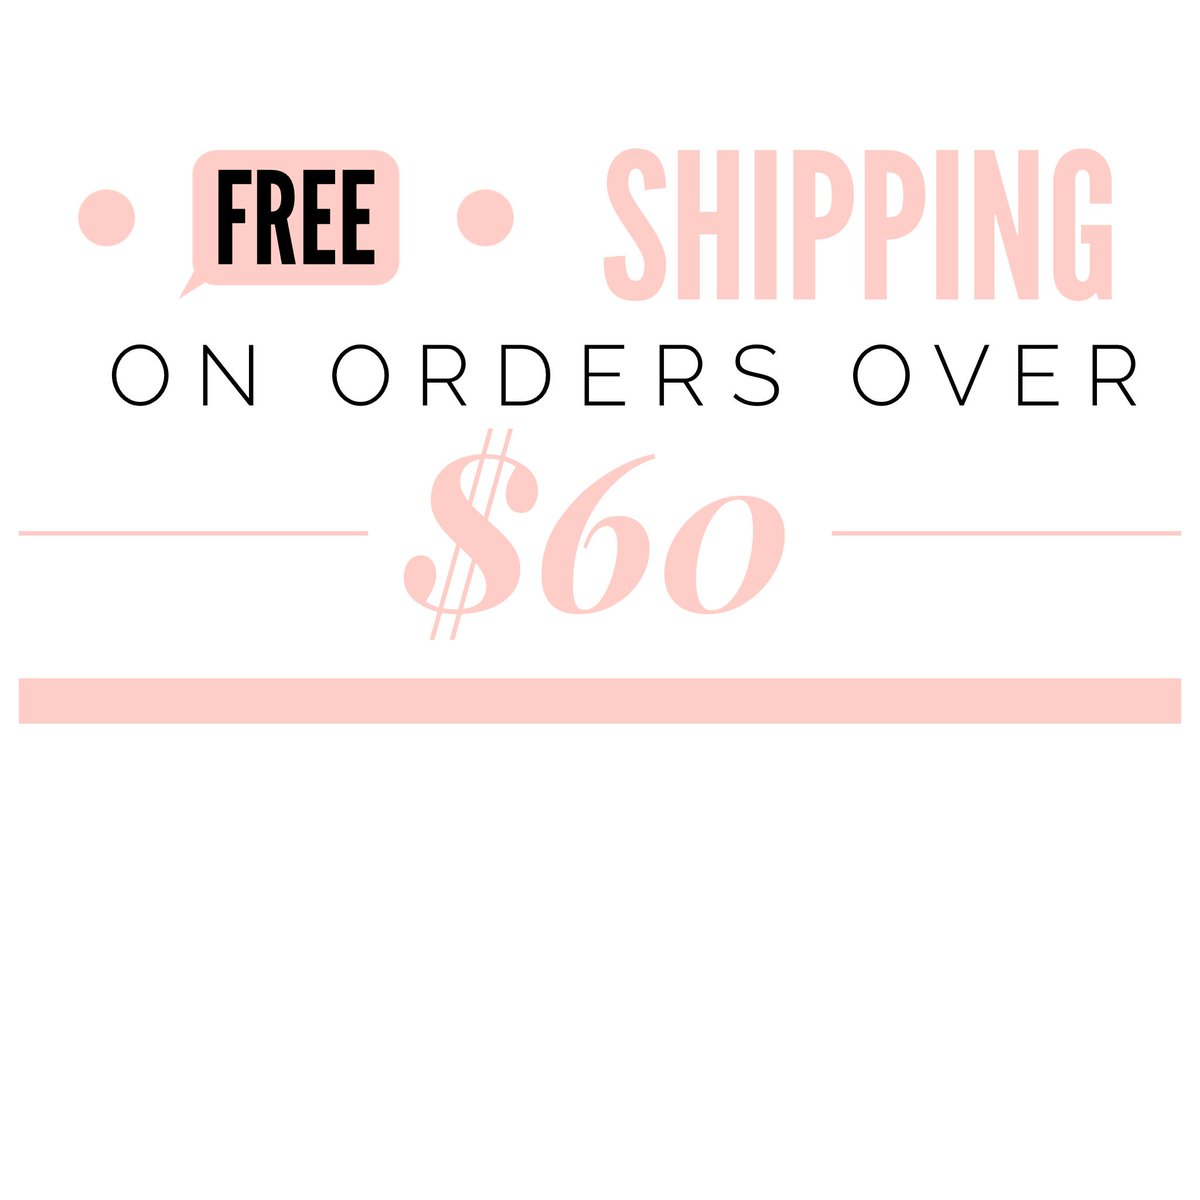 FREE SHIPPING! 🎀📦   Use code: FREESHIP60   *orders $60 and over  https://t.co/PxdsjtDtn7 https://t.co/YMel7mZi9M